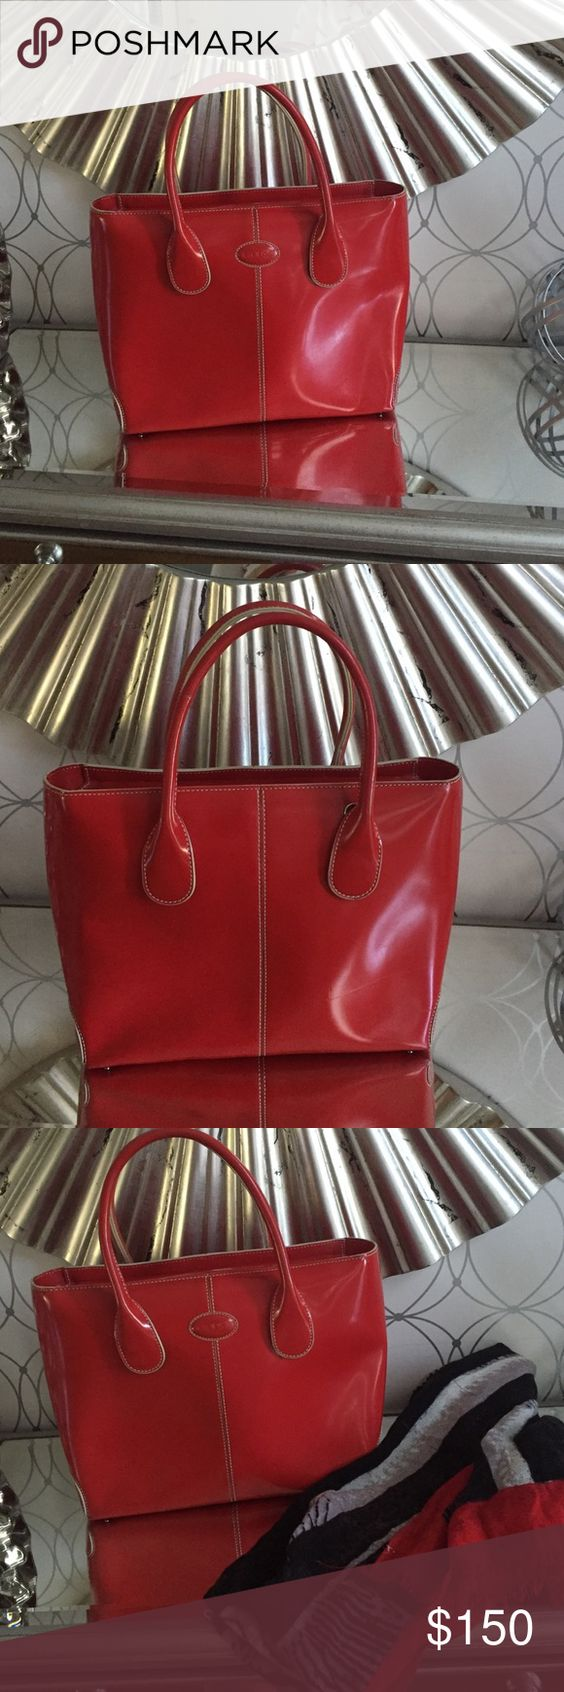 Todd Handbad Beautiful Tods Red Handbag with White Stitching. Like New Tods Bags